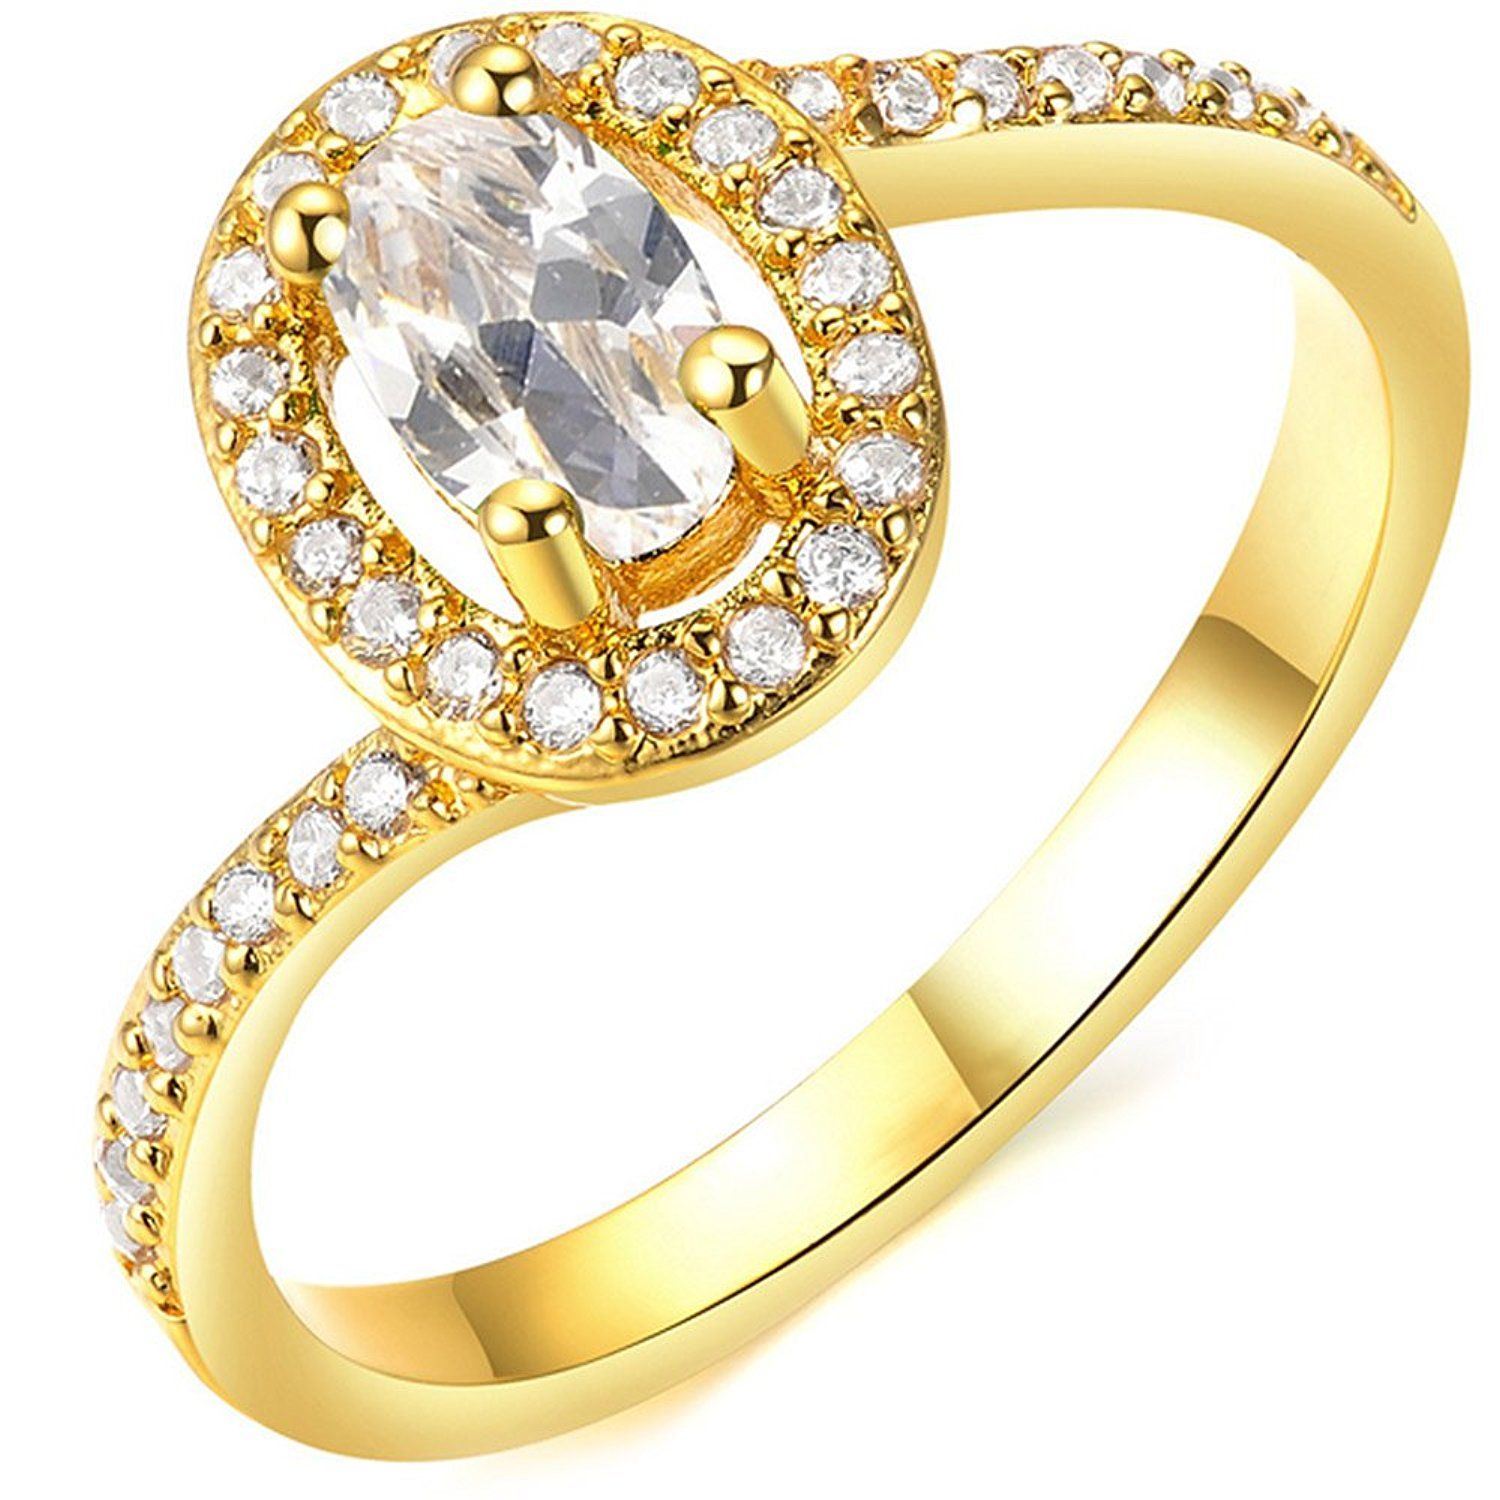 BOHG Jewelry Womens Oval White AAA Cubic Zirconia 18K Gold